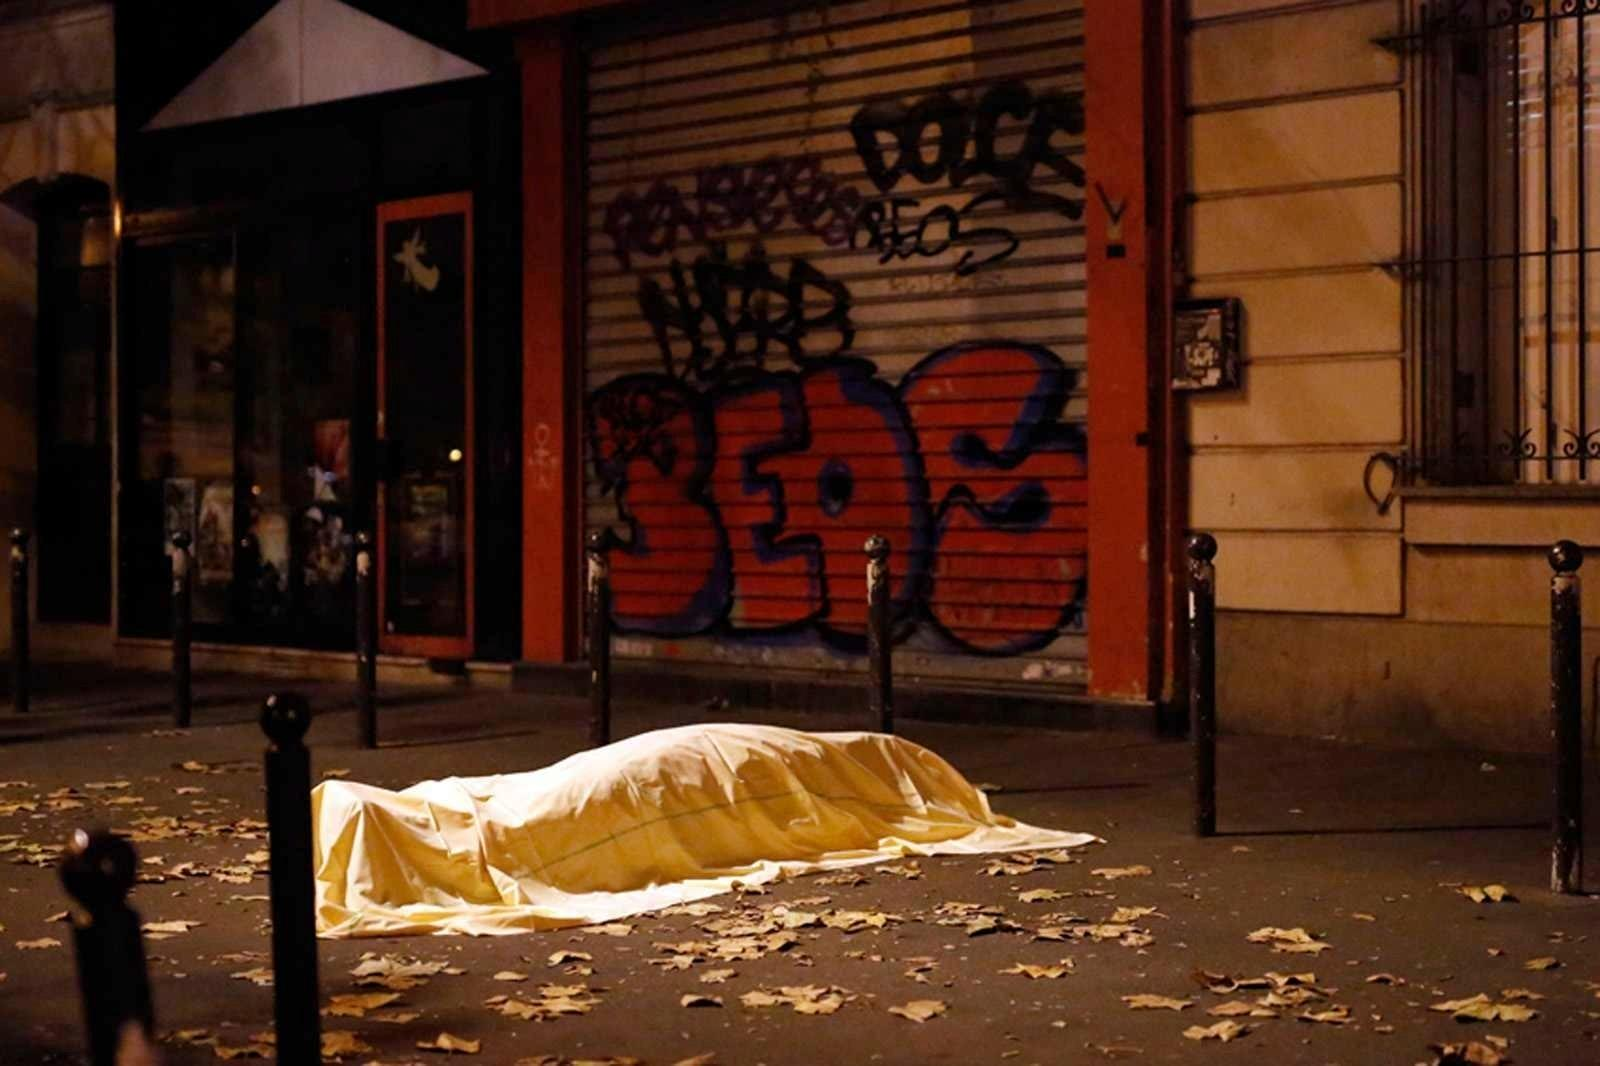 FILE - In this Friday Nov. 13, 2015 file photo a victim under a blanket lays dead outside the Bataclan theater in Paris. Salah Abdeslam, the only surviving member of the 10-man Islamic State cell that attacked Paris in November 2015, is going on trial on Monday, Feb. 5, 2018 in Belgium. The trial covers a shootout that led to his capture in March 2016.  (AP Photo/Jerome Delay, File)